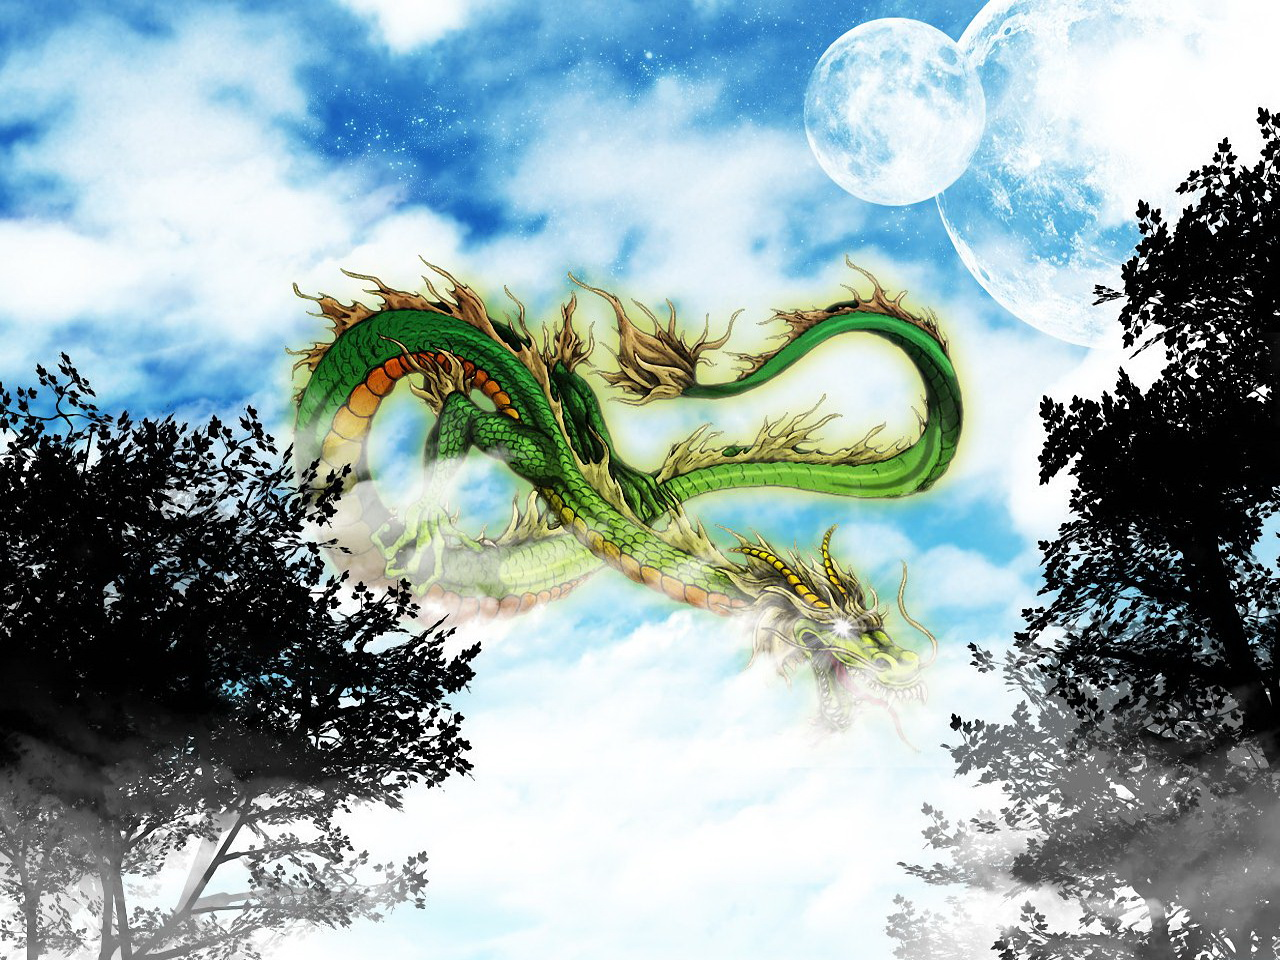 Chinese dragon wallpaper 1280x960 Wallpapers 3d for desktop 3d 1280x960